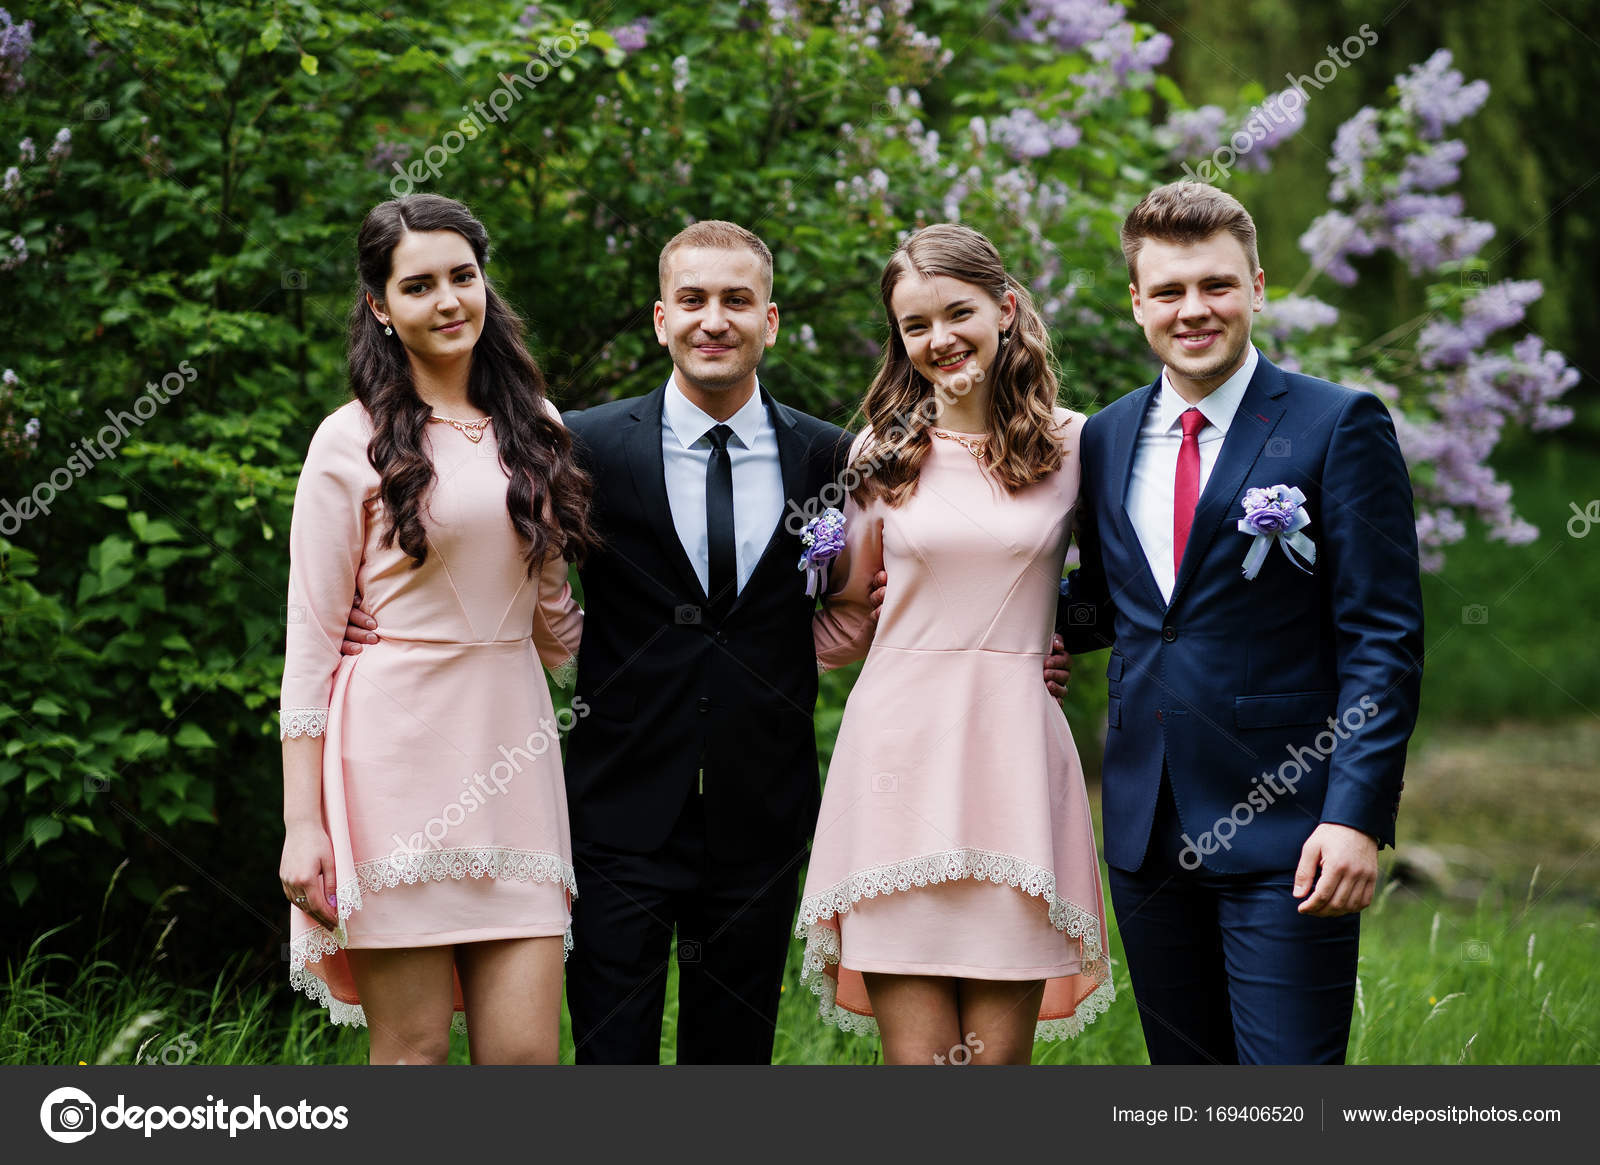 e47fc156ad6 Bridesmaids in pink dresses posing with handsome groomsmen in tu– stock  image